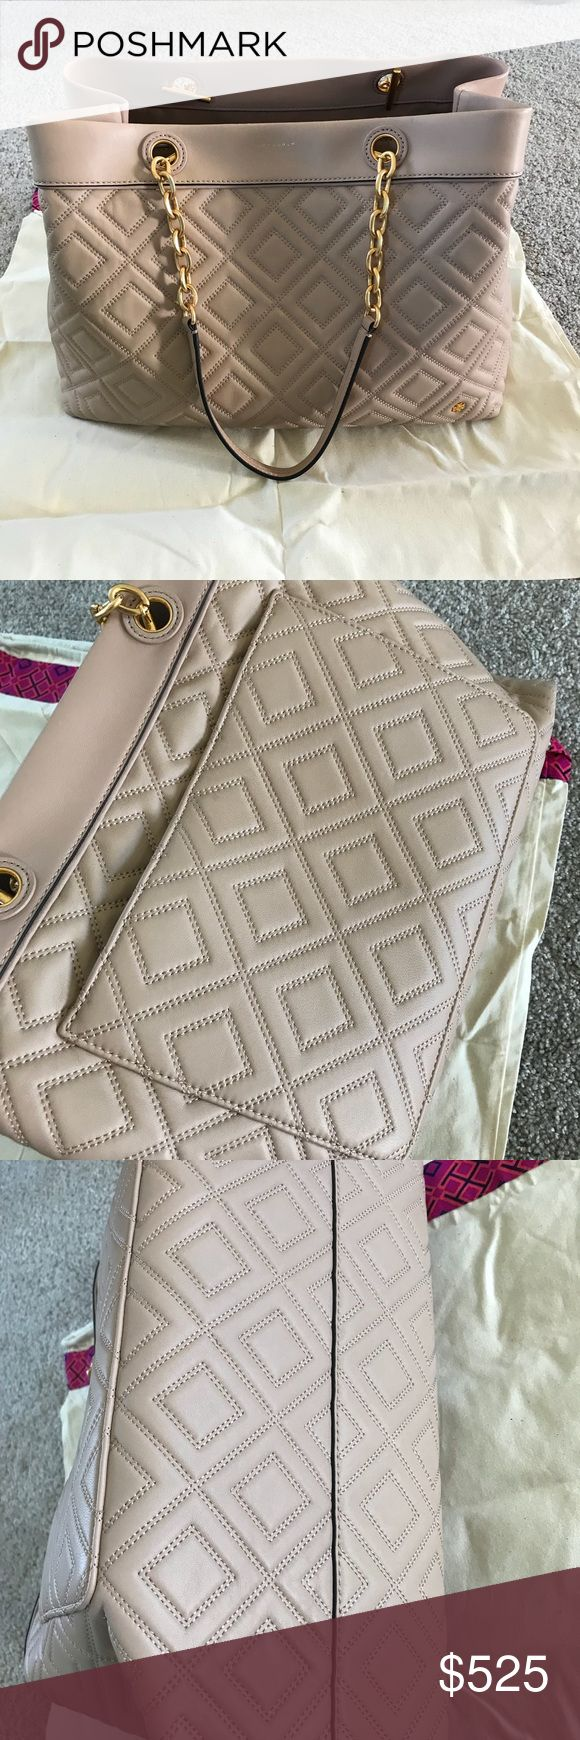 """Tory Burch Fleming shoulder bag (LARGE) This is the most beautiful quilted leather bag.  The Tory Burch Fleming is a dupe for the Gucci GG Marmont!!! The color is a """"new mink"""" pink / beige color, gold hardware, perfect neutral for every day. I have used this one time- I bought 2 Tory Bags and am keeping the McGraw Tote since I have been reaching for it more! It breaks my heart a bit to have to give this one up! One slight scratch near upper corner pictured above- otherwise perfect condition…"""